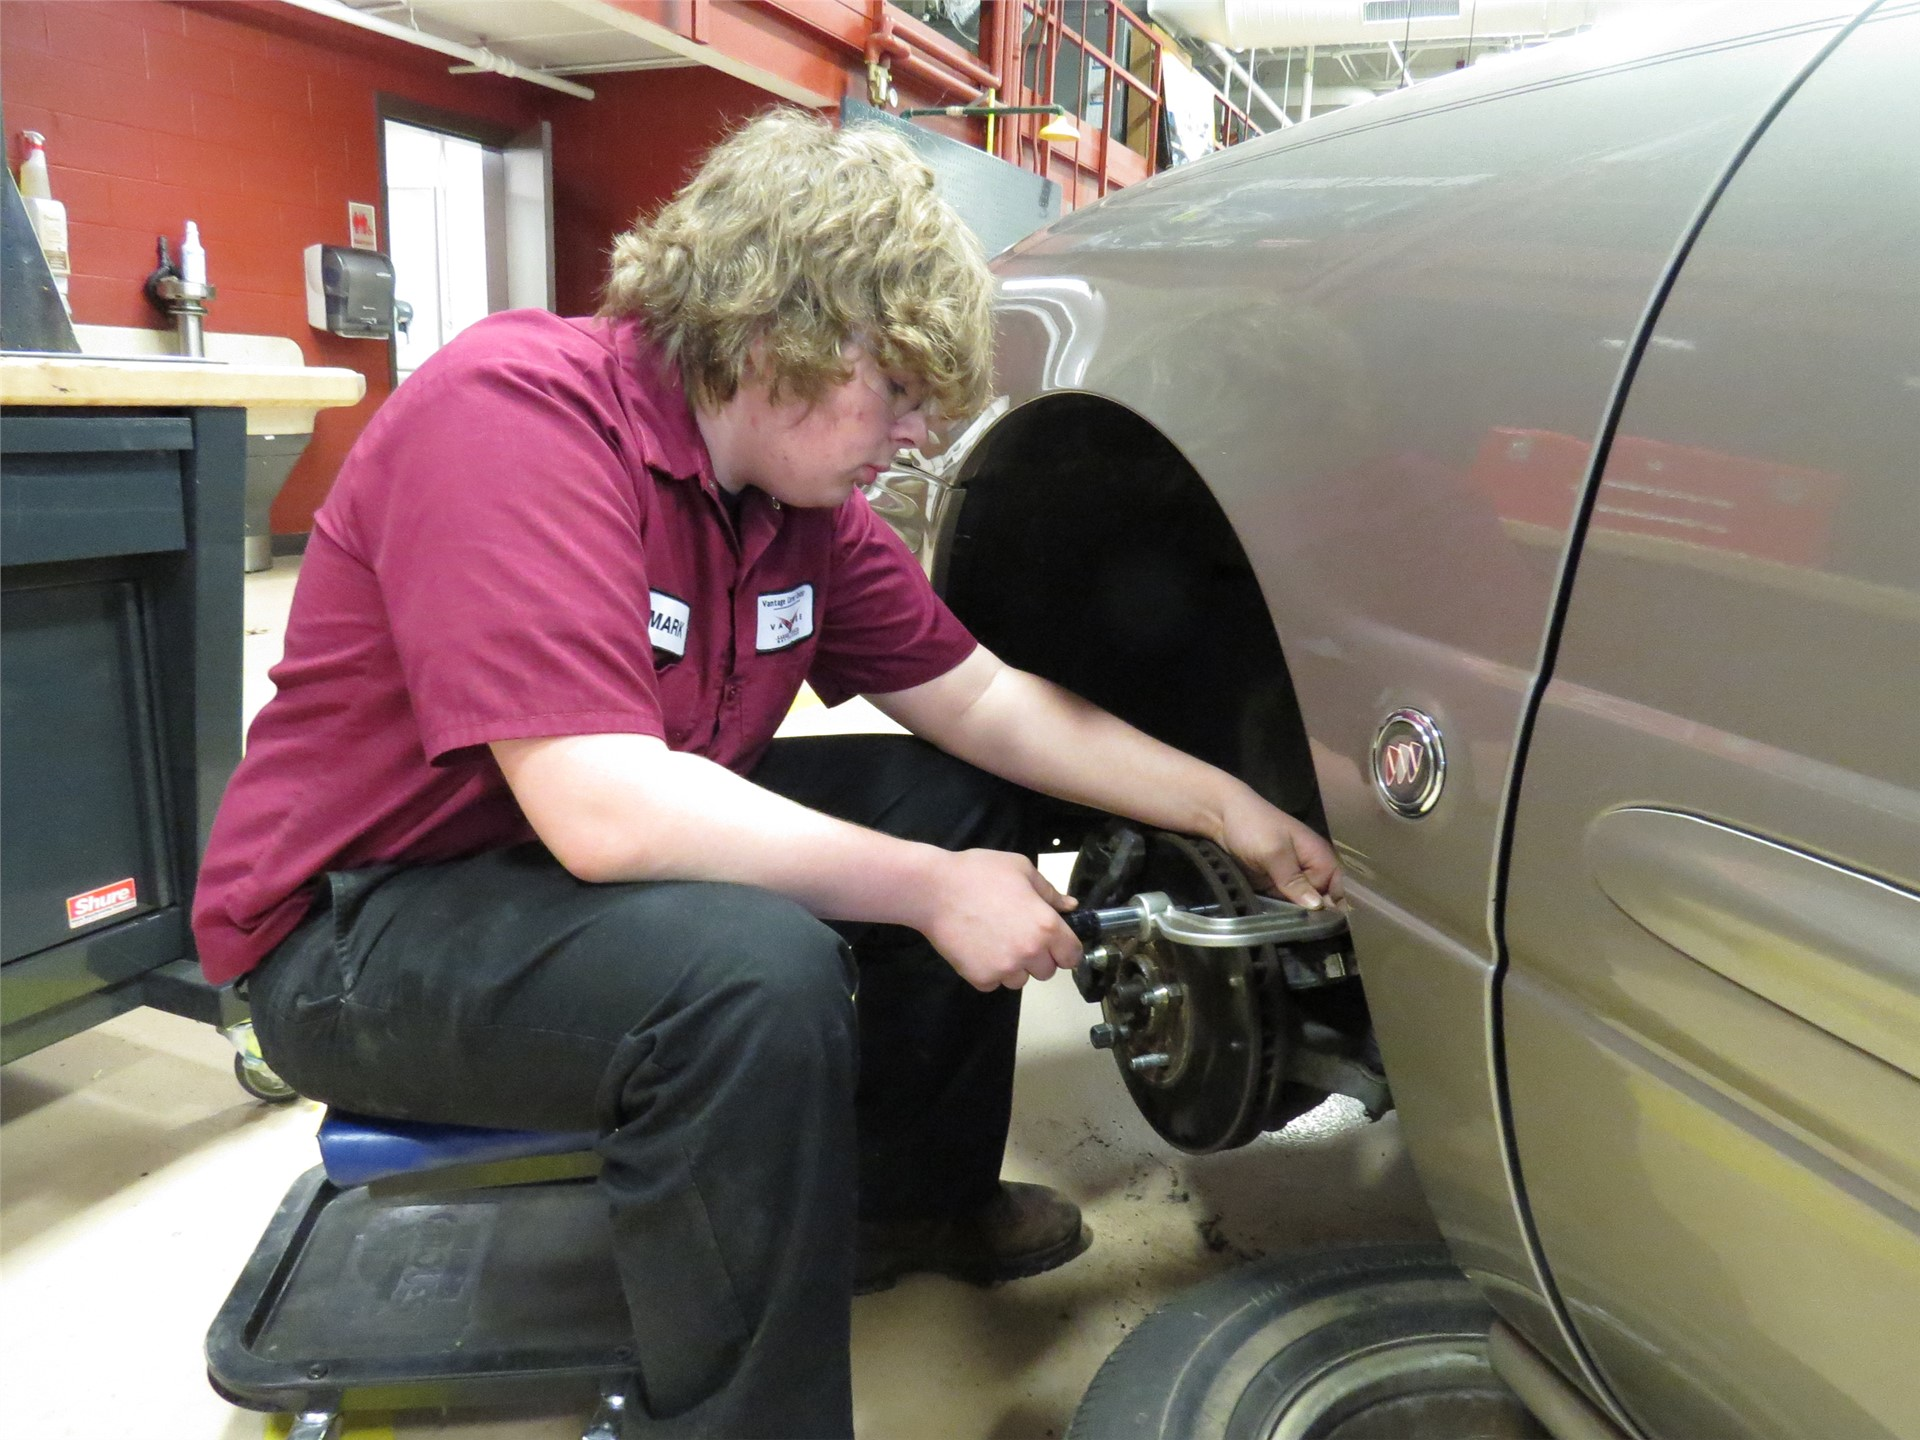 Student working on car brakes